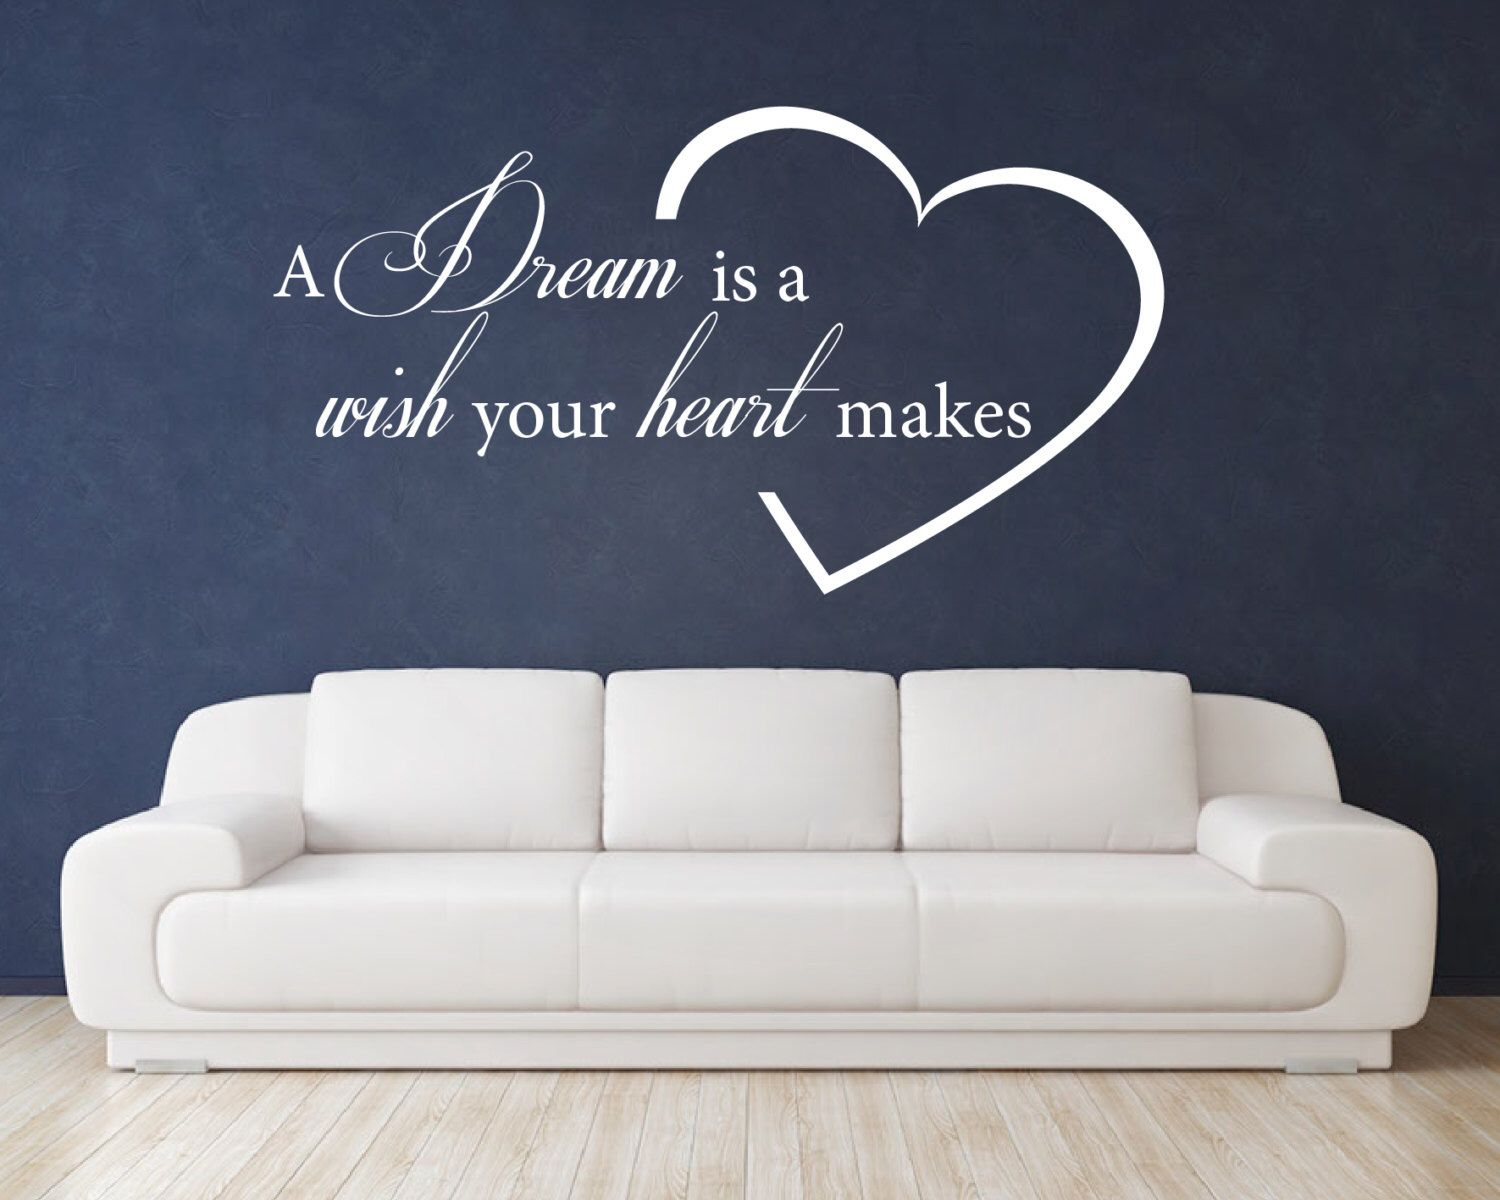 Family quote wall decal love wall decal a dream is a wish your